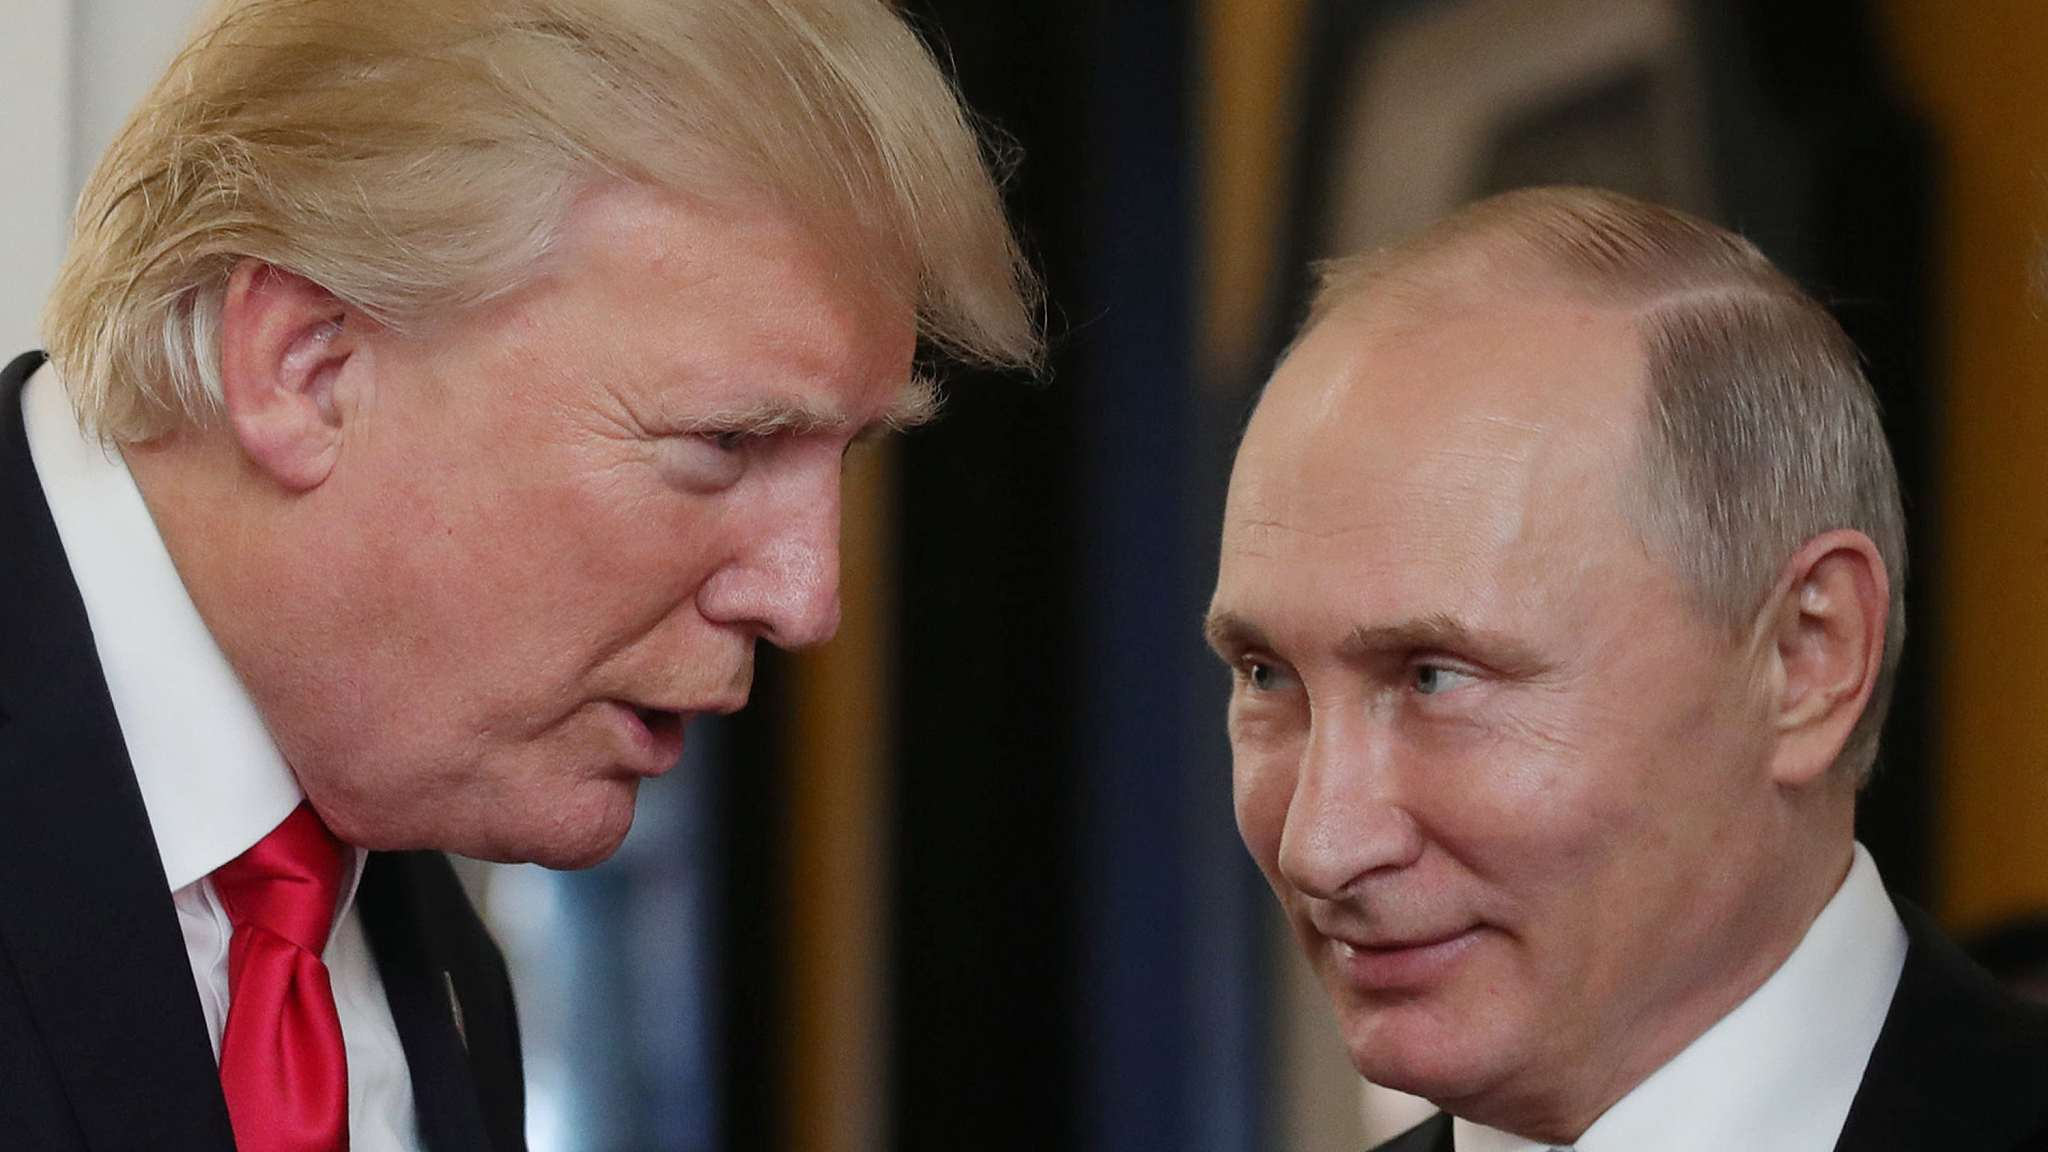 The art of the deal between the US and Russia